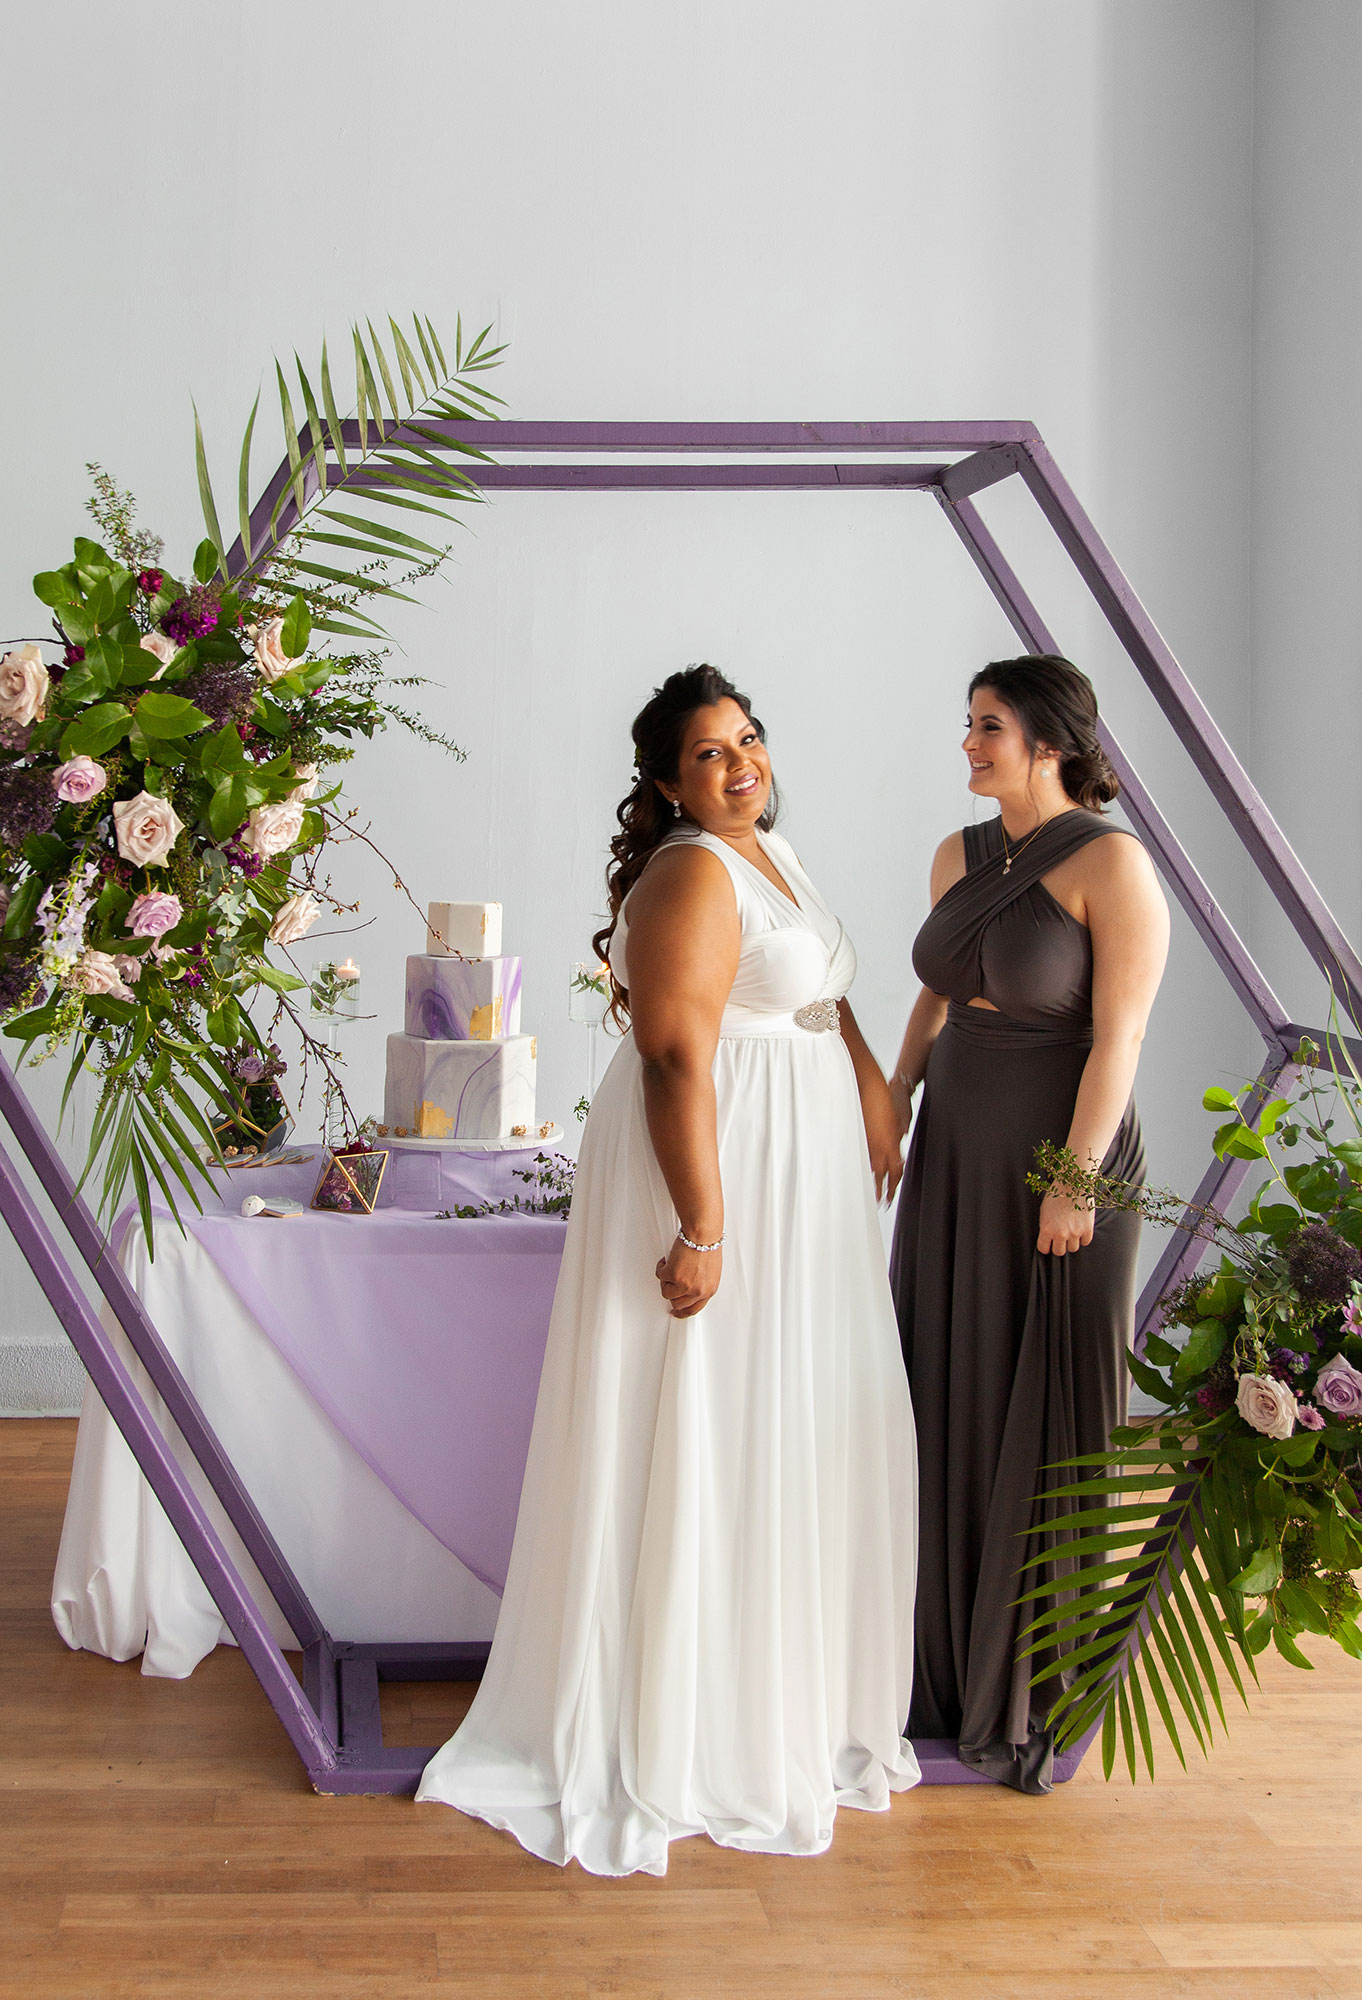 Henkaa fall wedding collection with bride in white and bridesmaid in gray